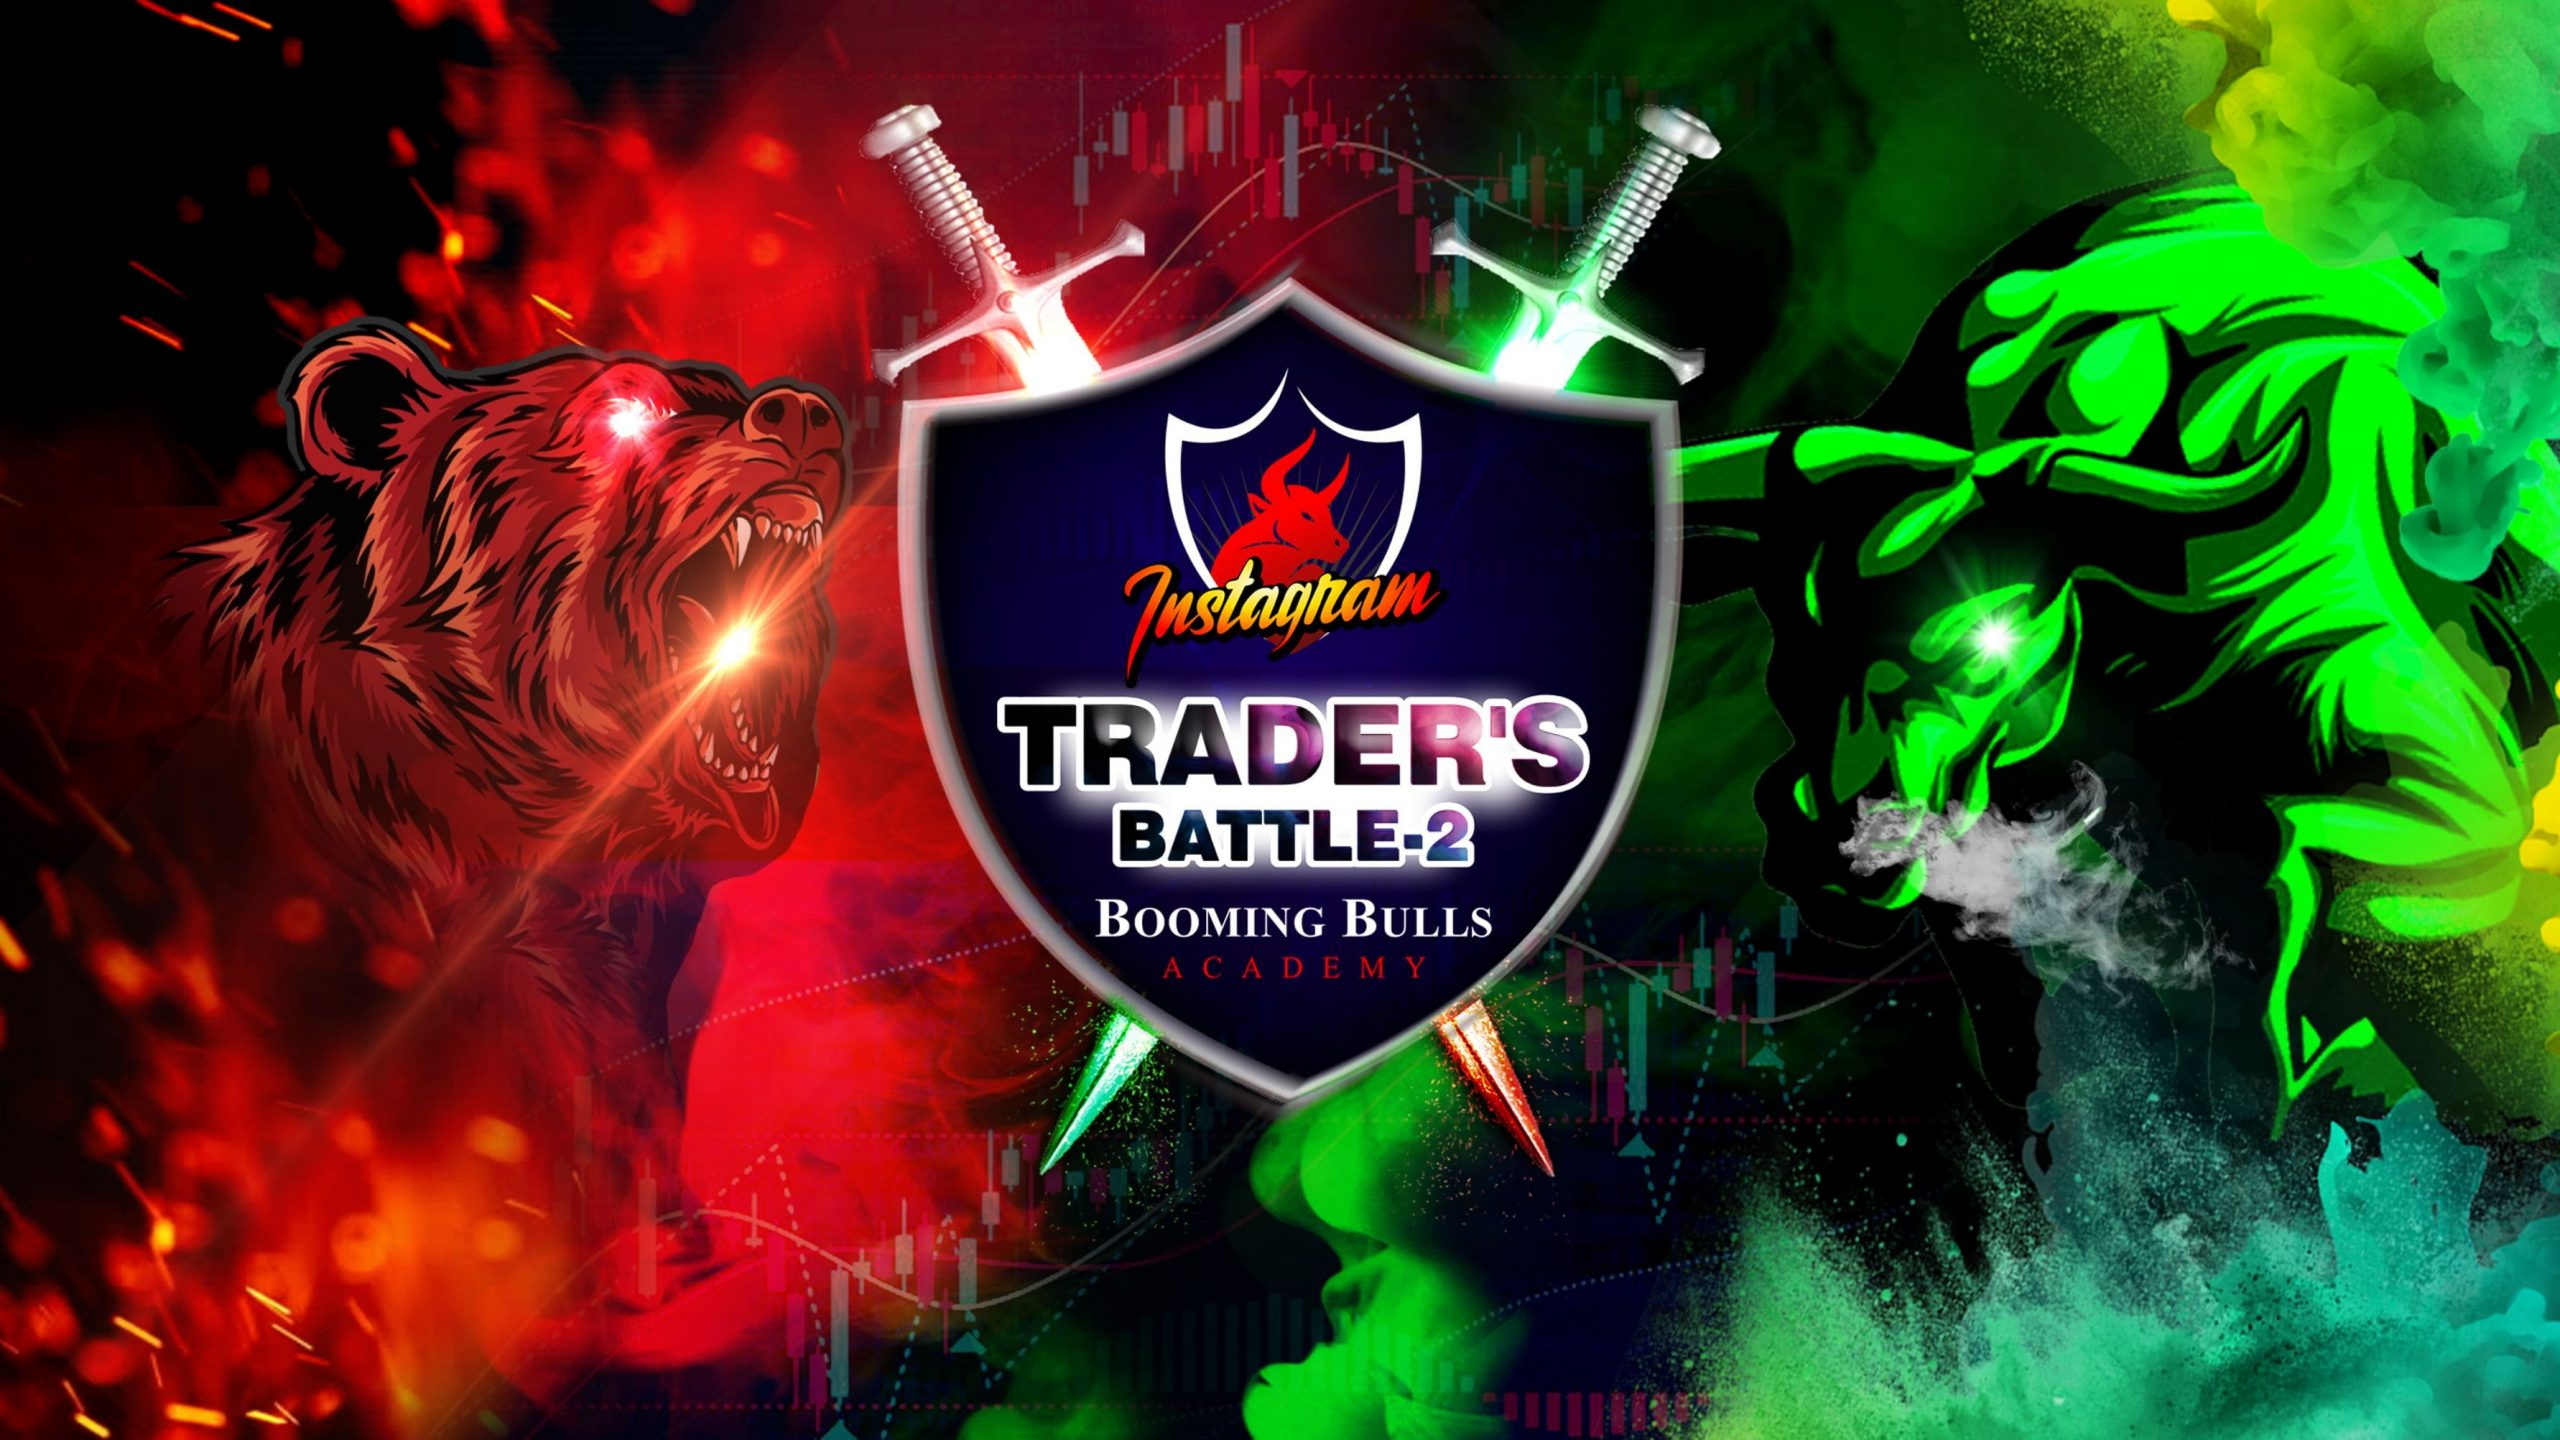 WE ARE BACK WITH INSTAGRAM TRADERS BATTLE 2!!!